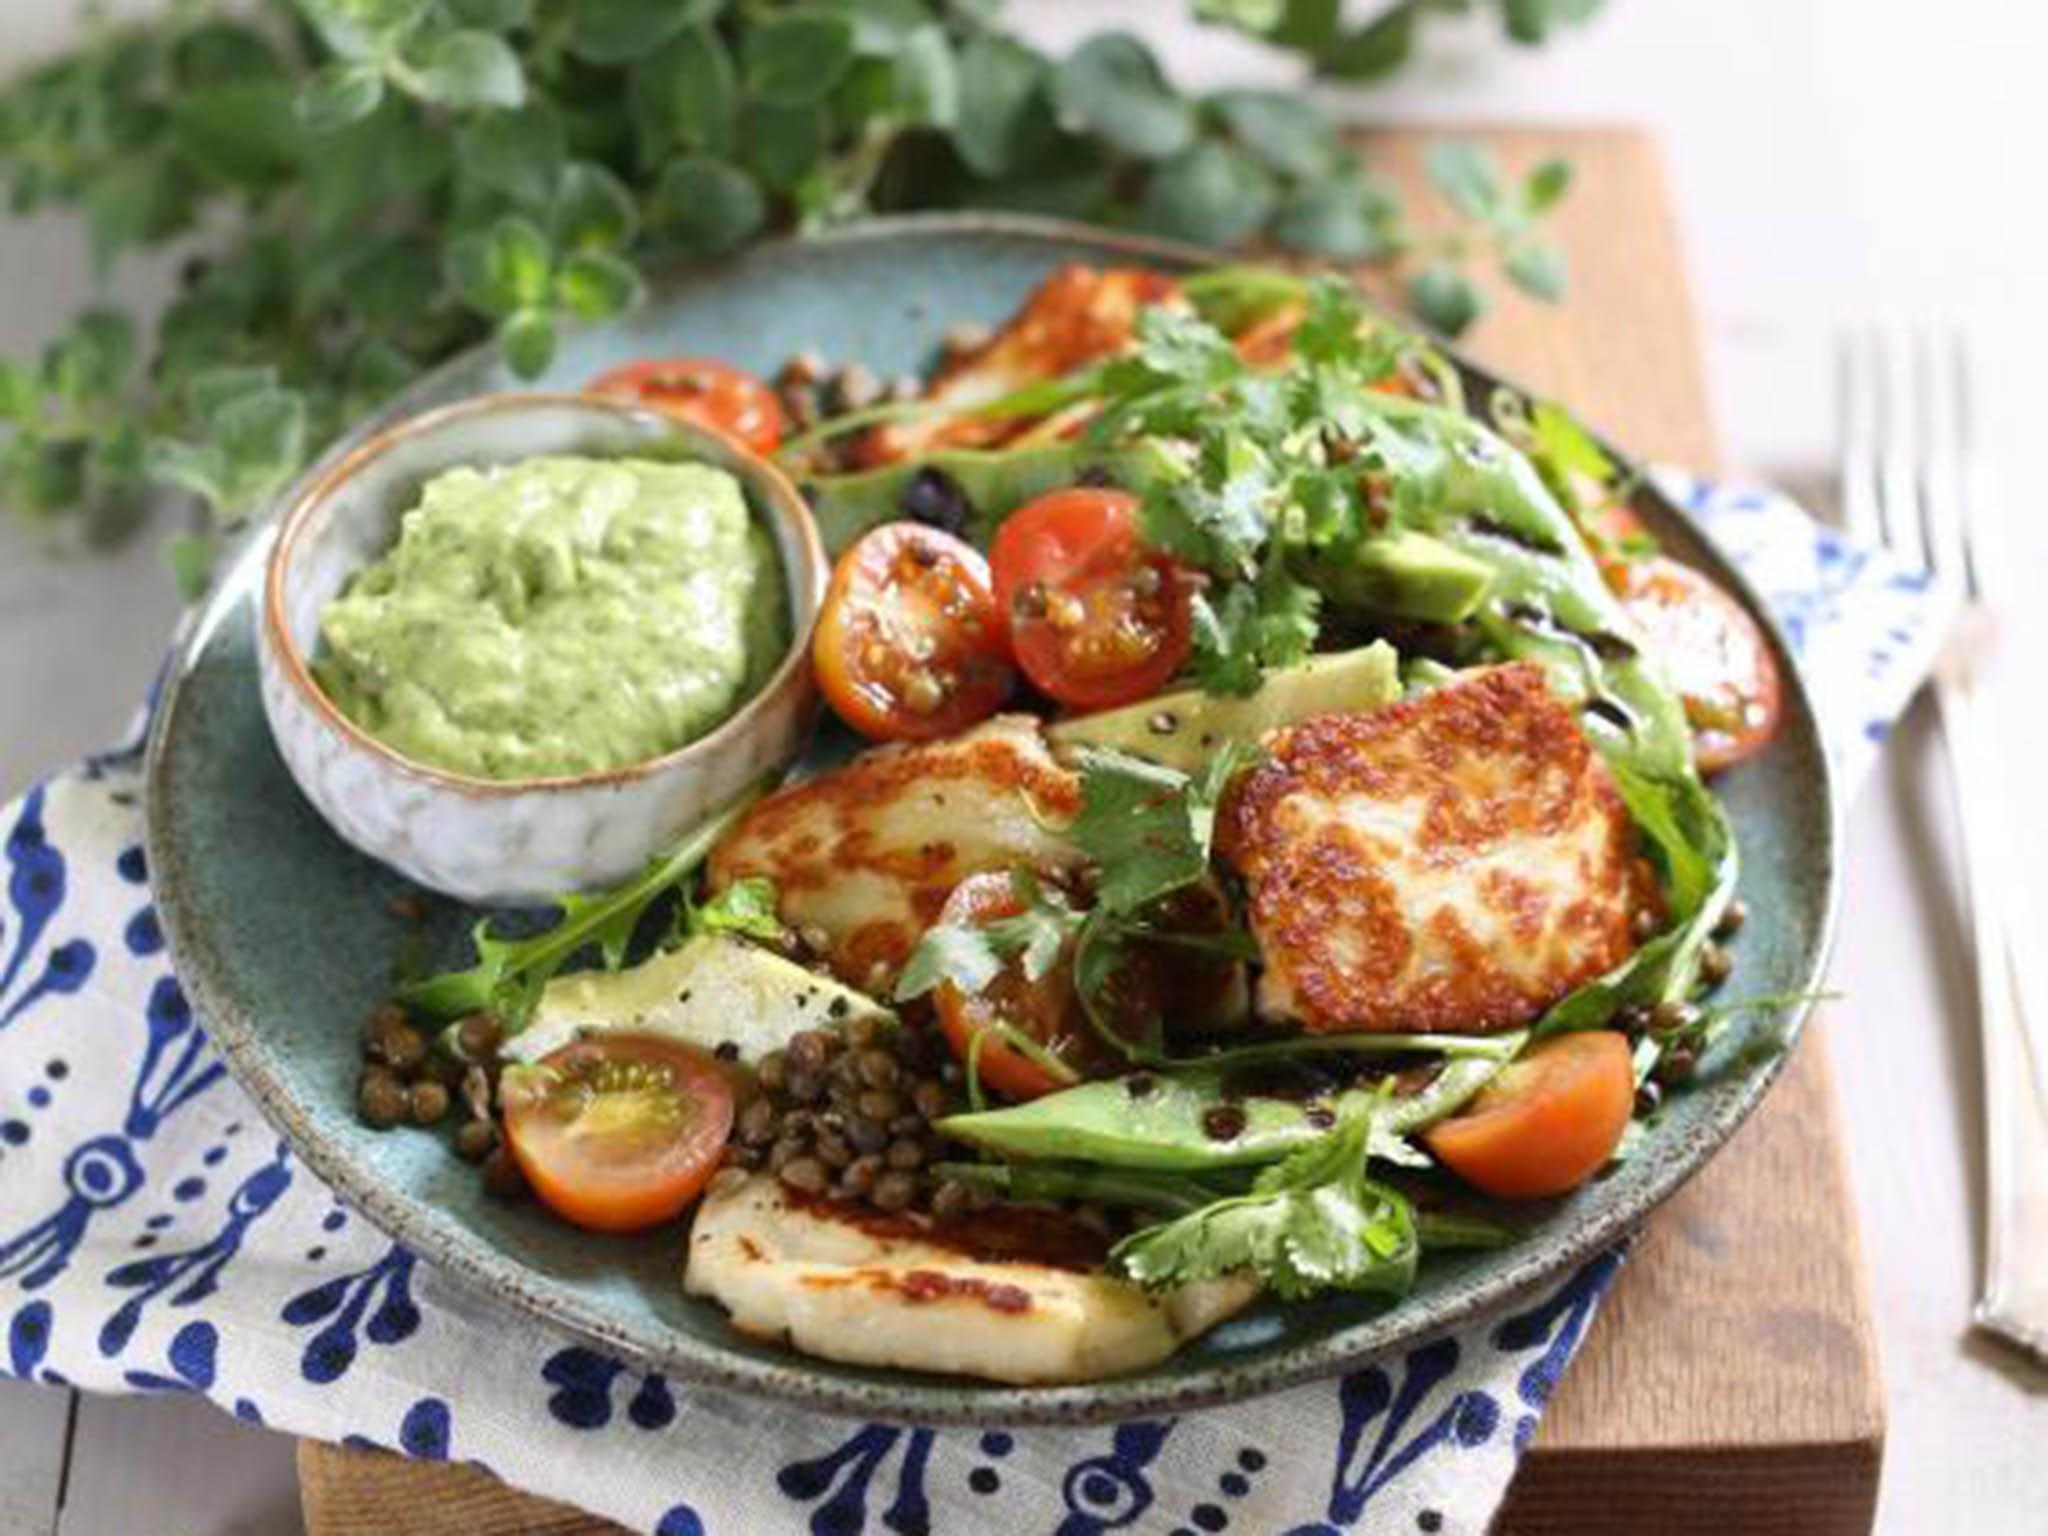 How to make grilled halloumi and bean salad with avocado dressing 1